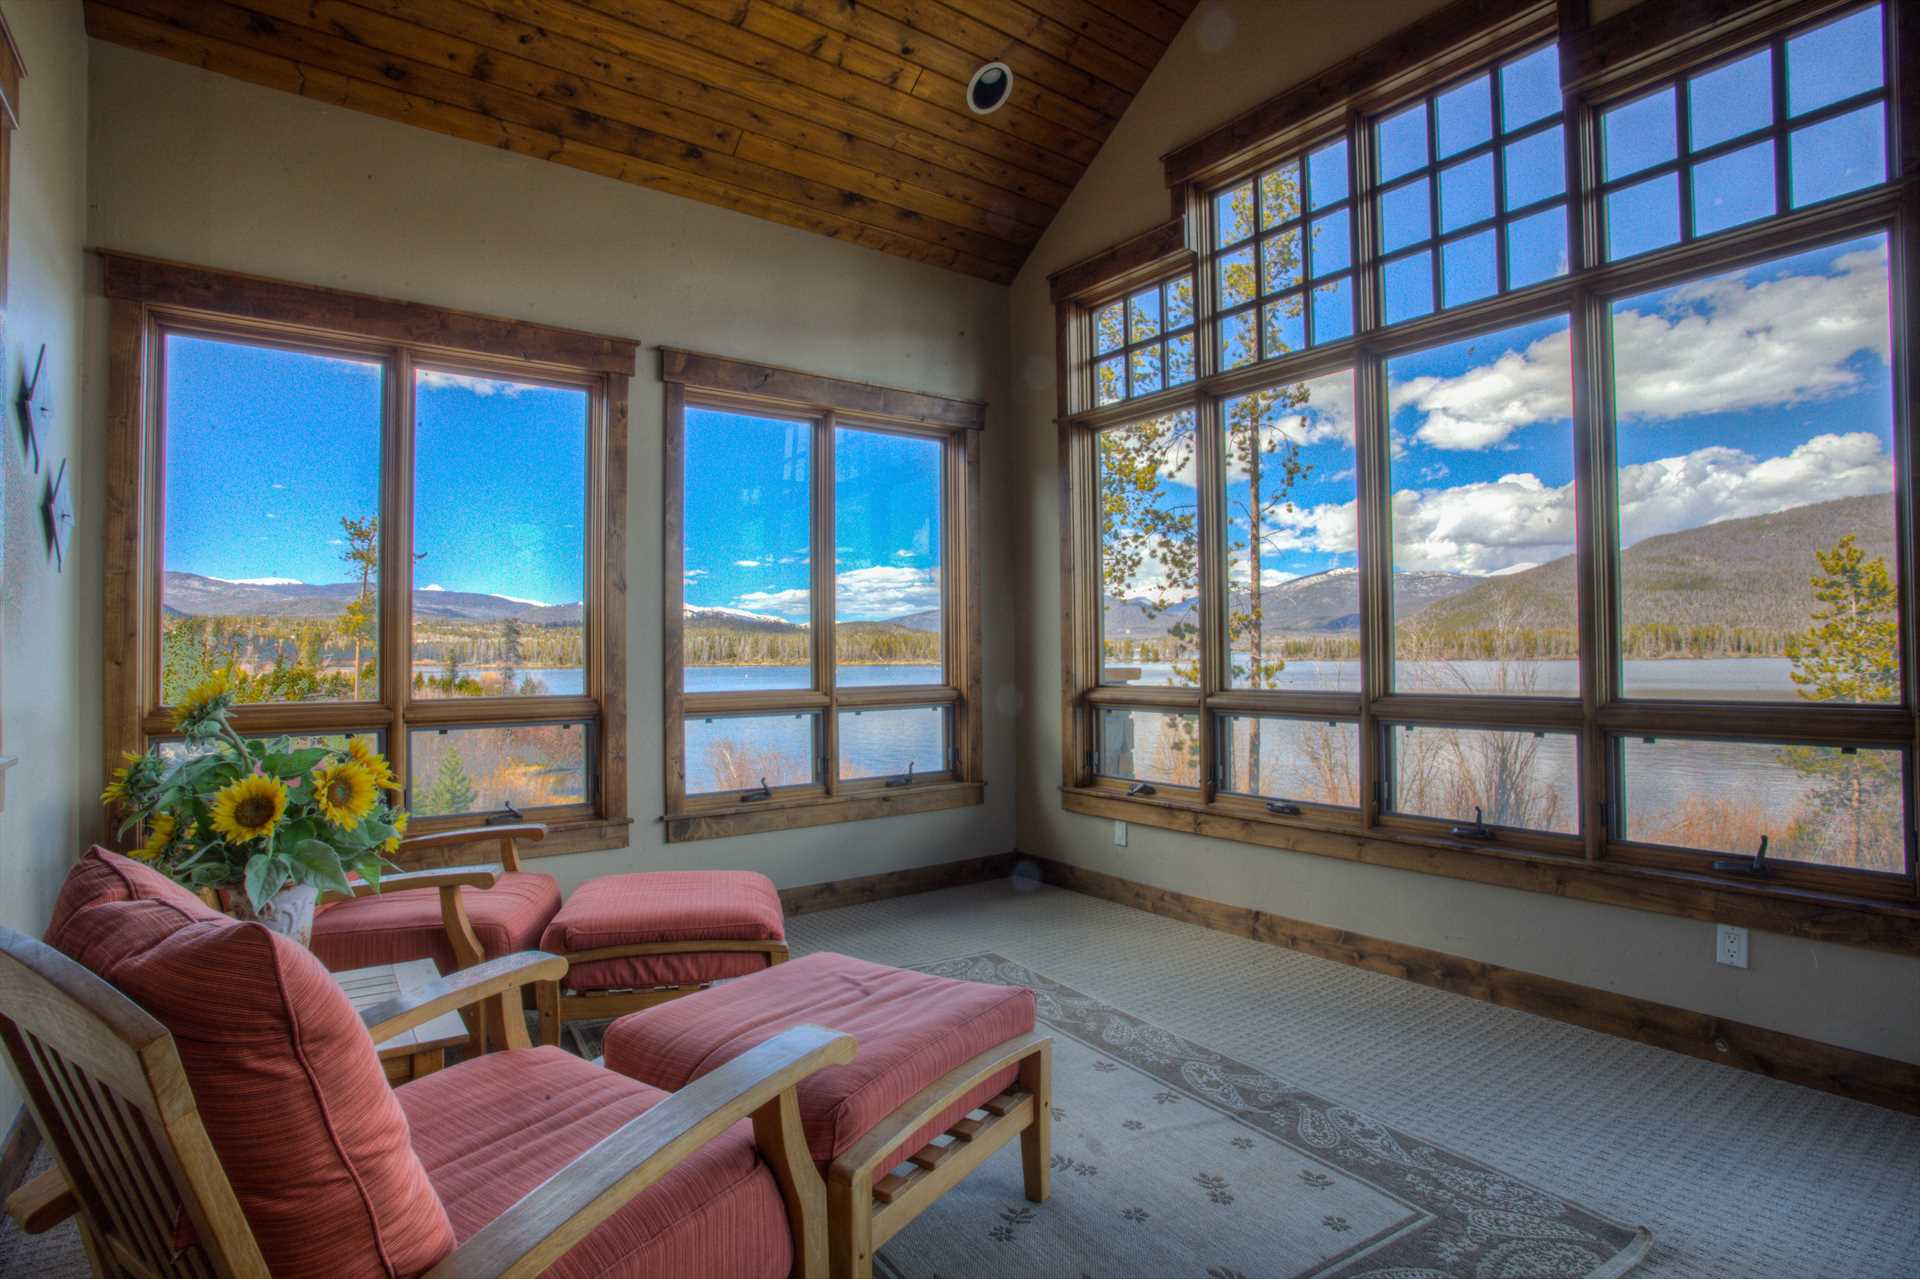 Sitting room overlooking the lake